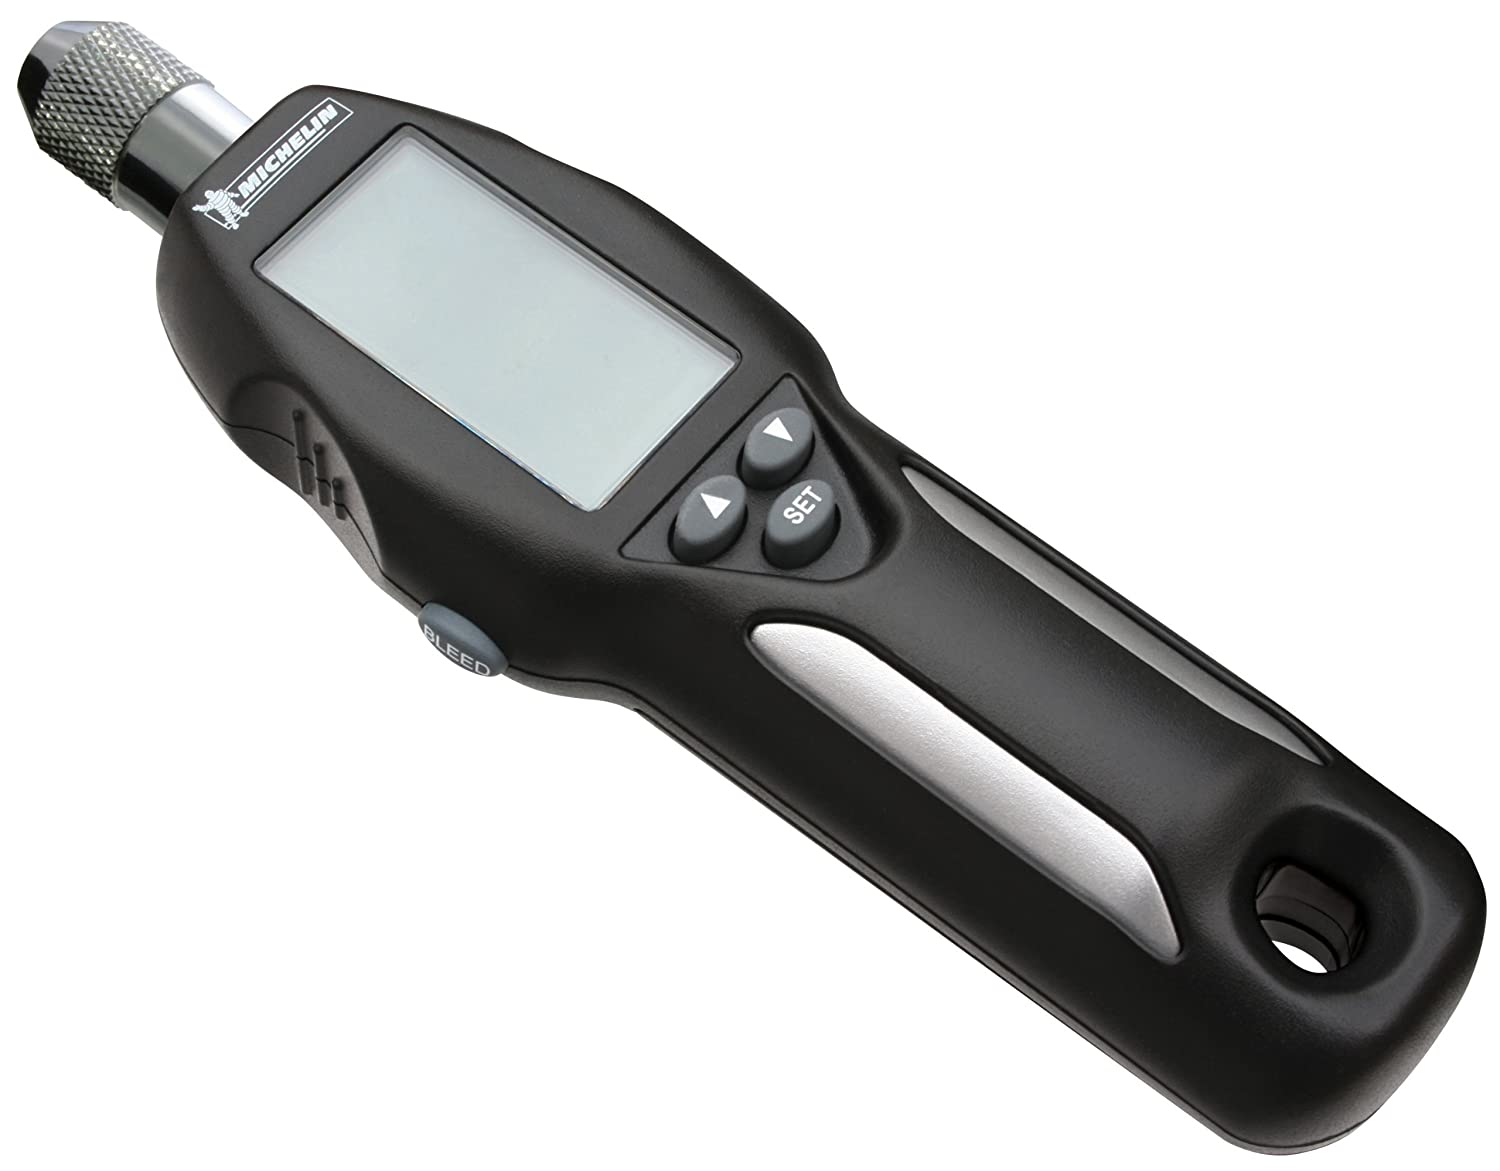 Measurement Limited Michelin MN-4535B Digital Programmable Tire Gauge with Bleed Valve